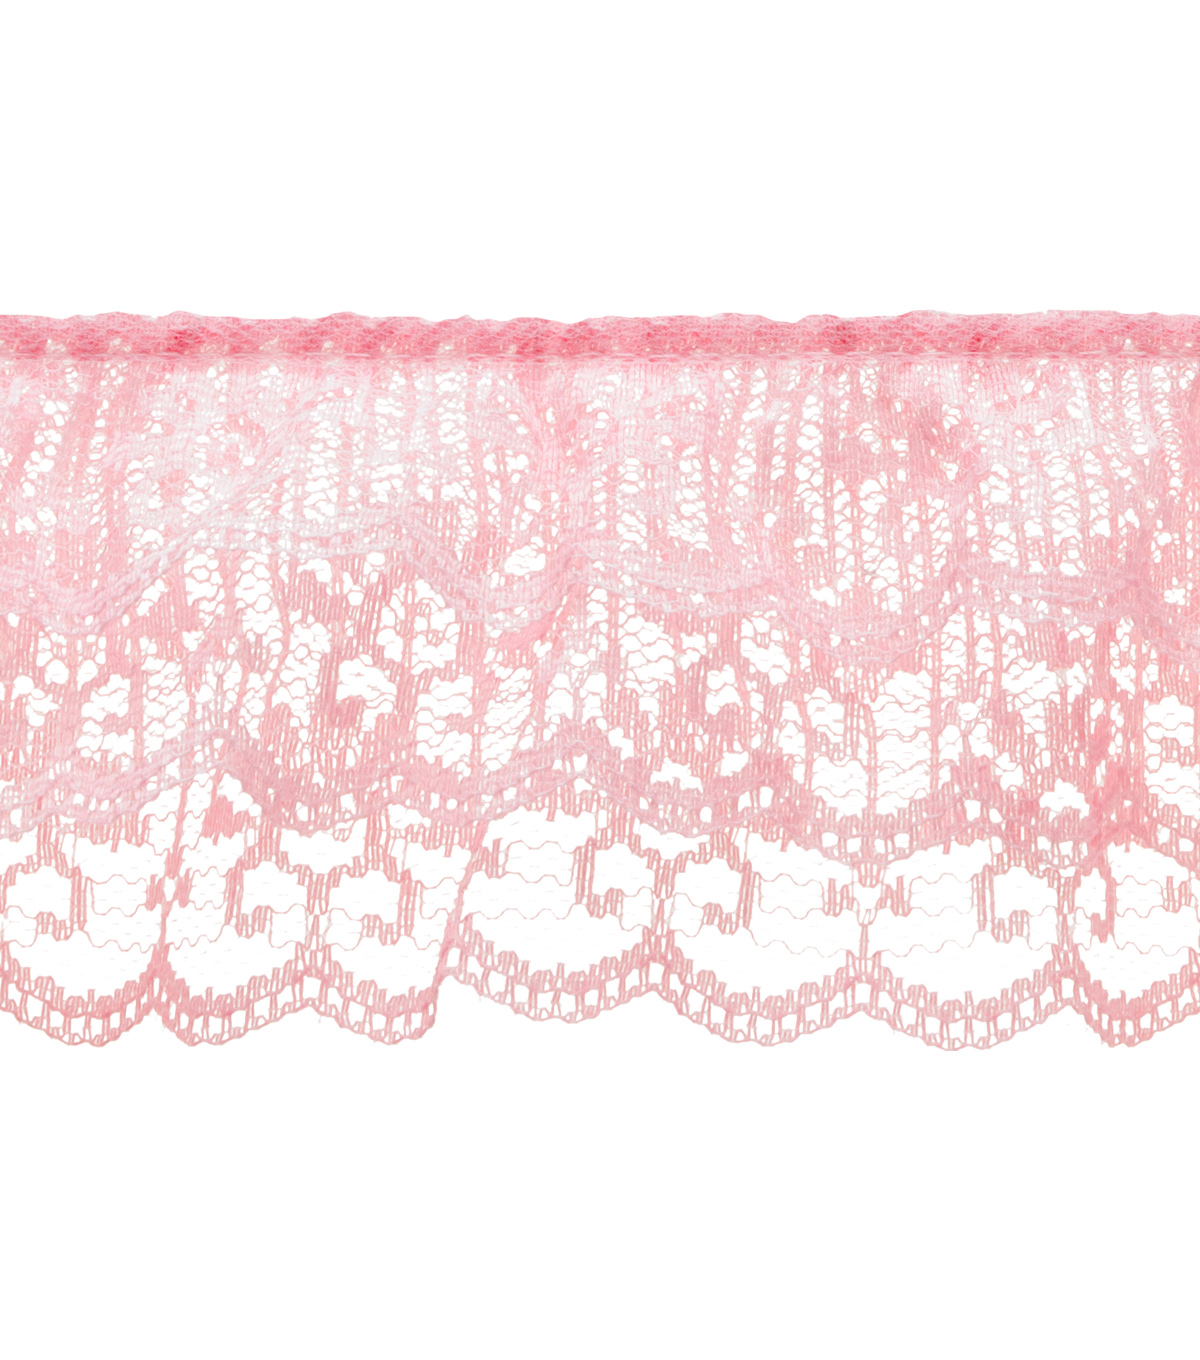 Simplicity Trims-Ruffled 3 Tier Lace Pink